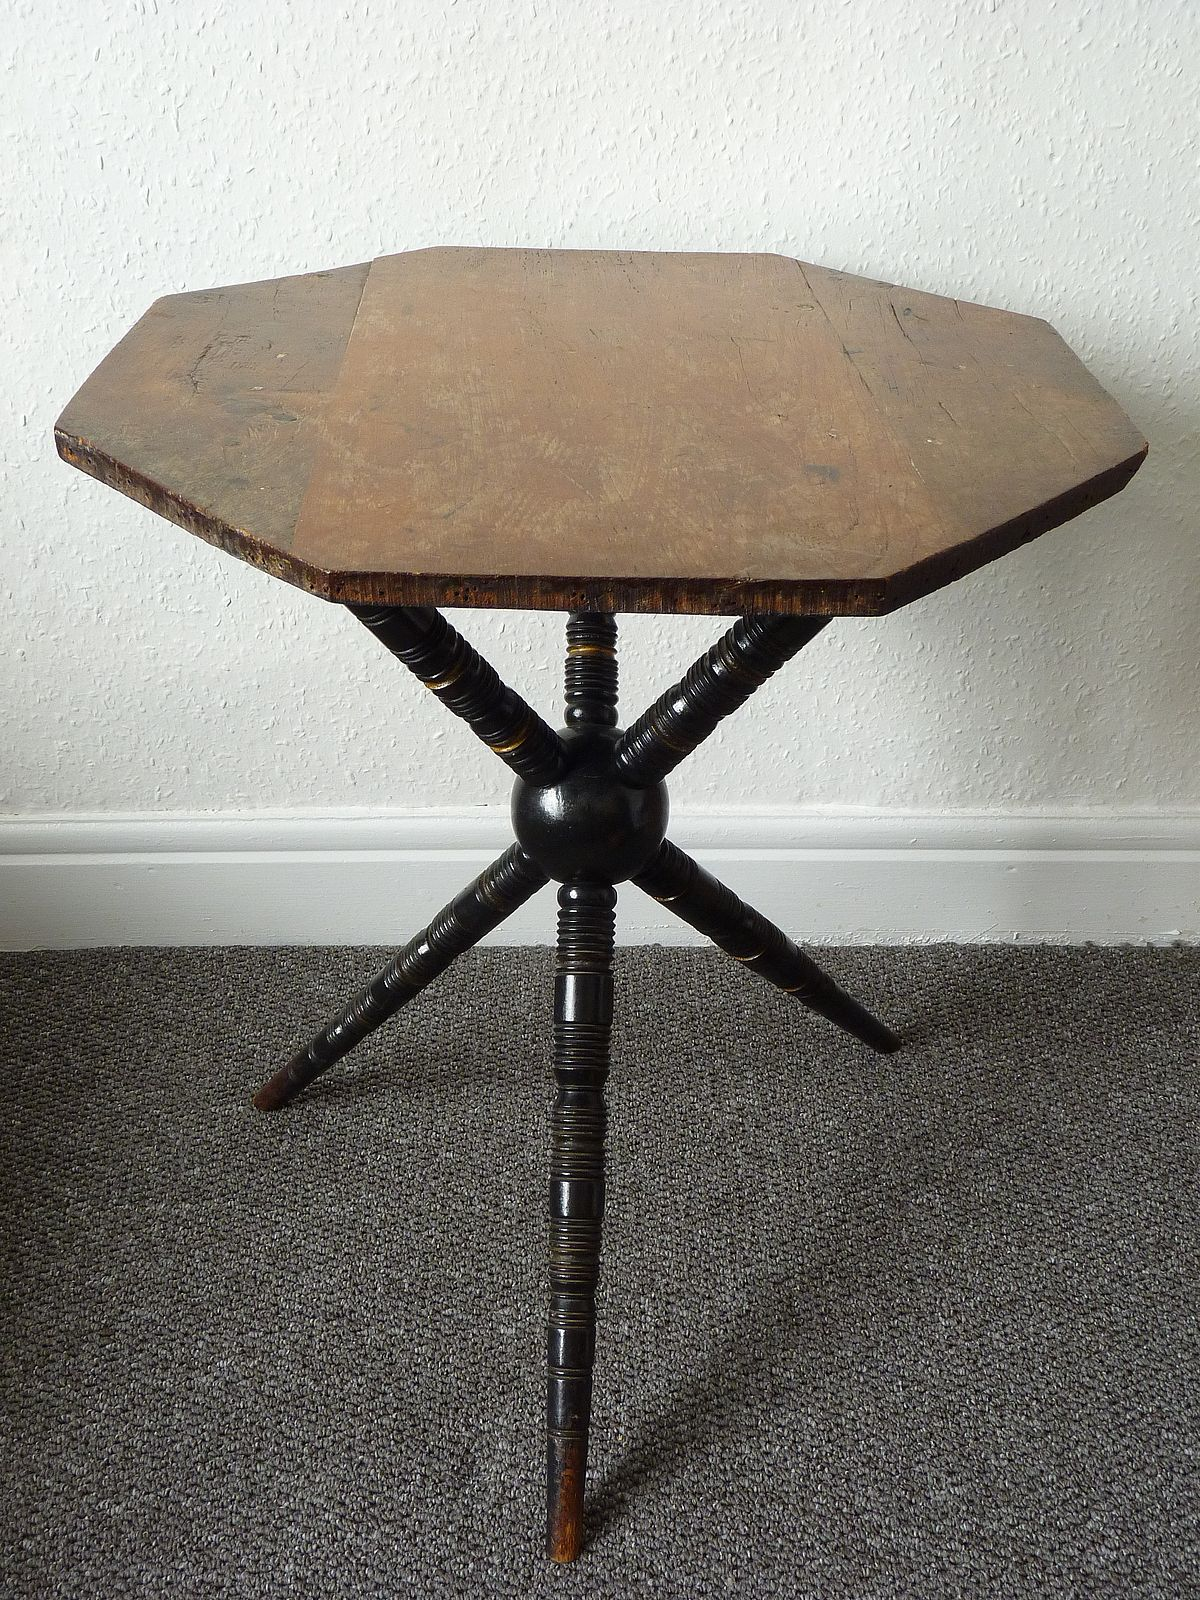 Antique Ebonised and Gilded Bobbin Leg Gypsy Table